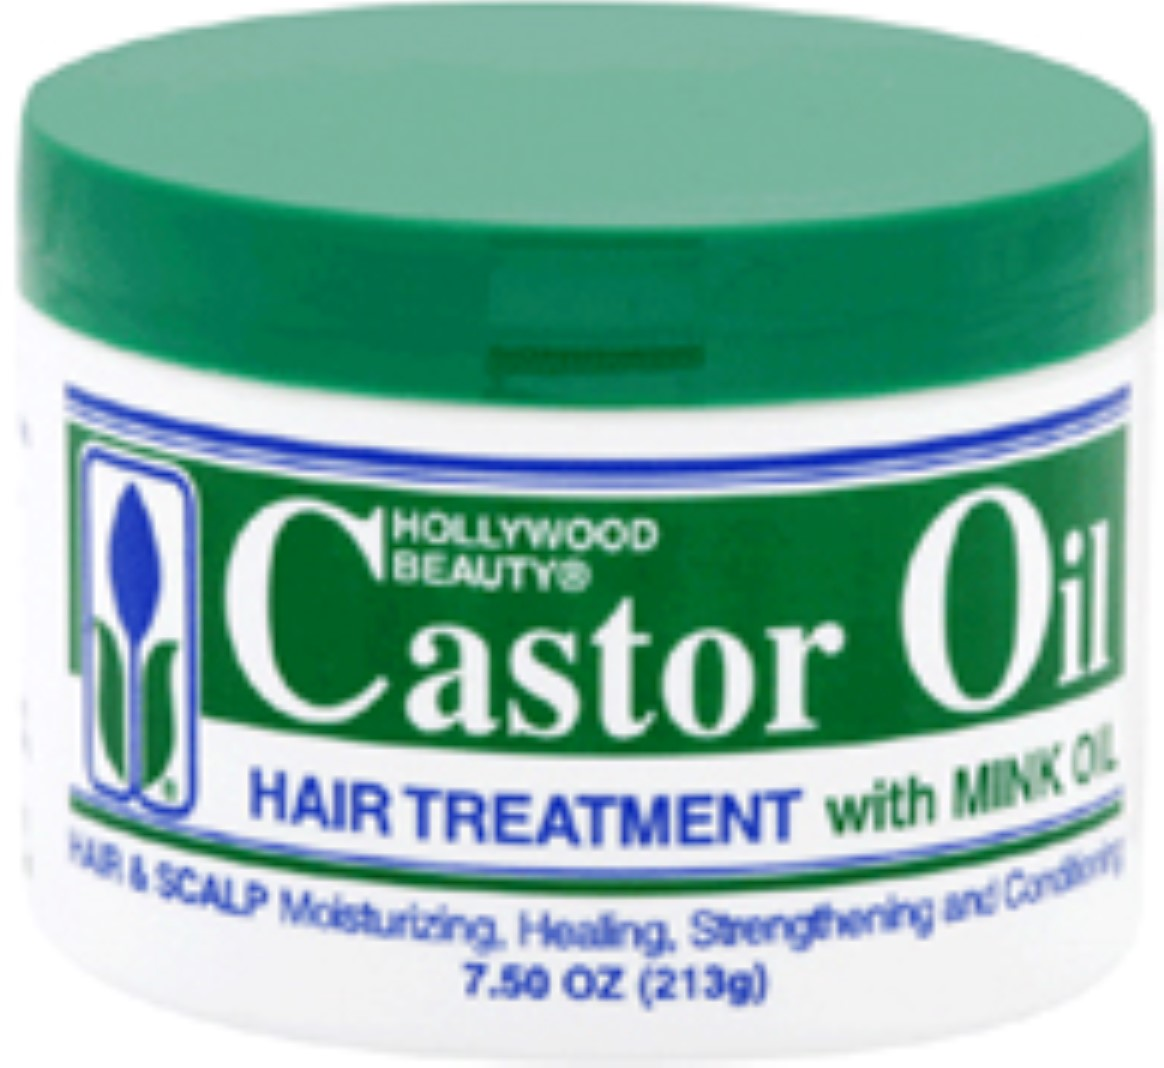 Hollywood Beauty Castor Oil Hair Treatment with Mink Oil, 7.5 oz